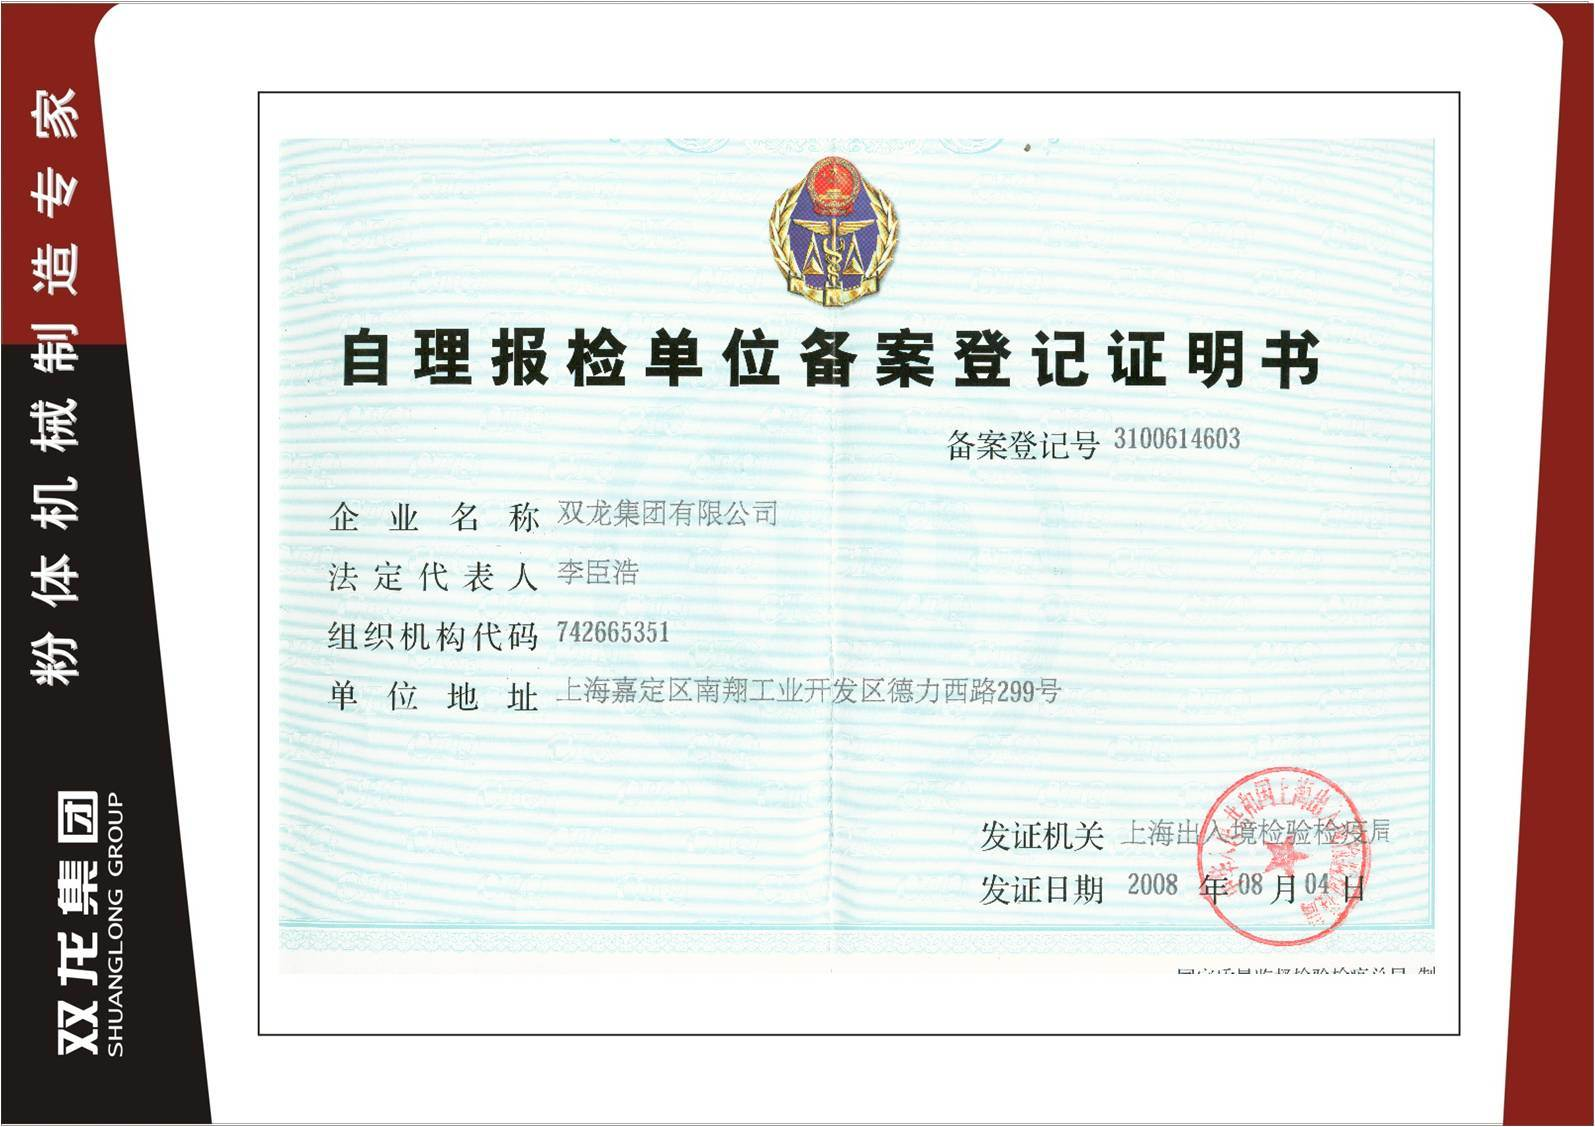 Self-care Inspection and Quarantine Declaration Registration Certificate